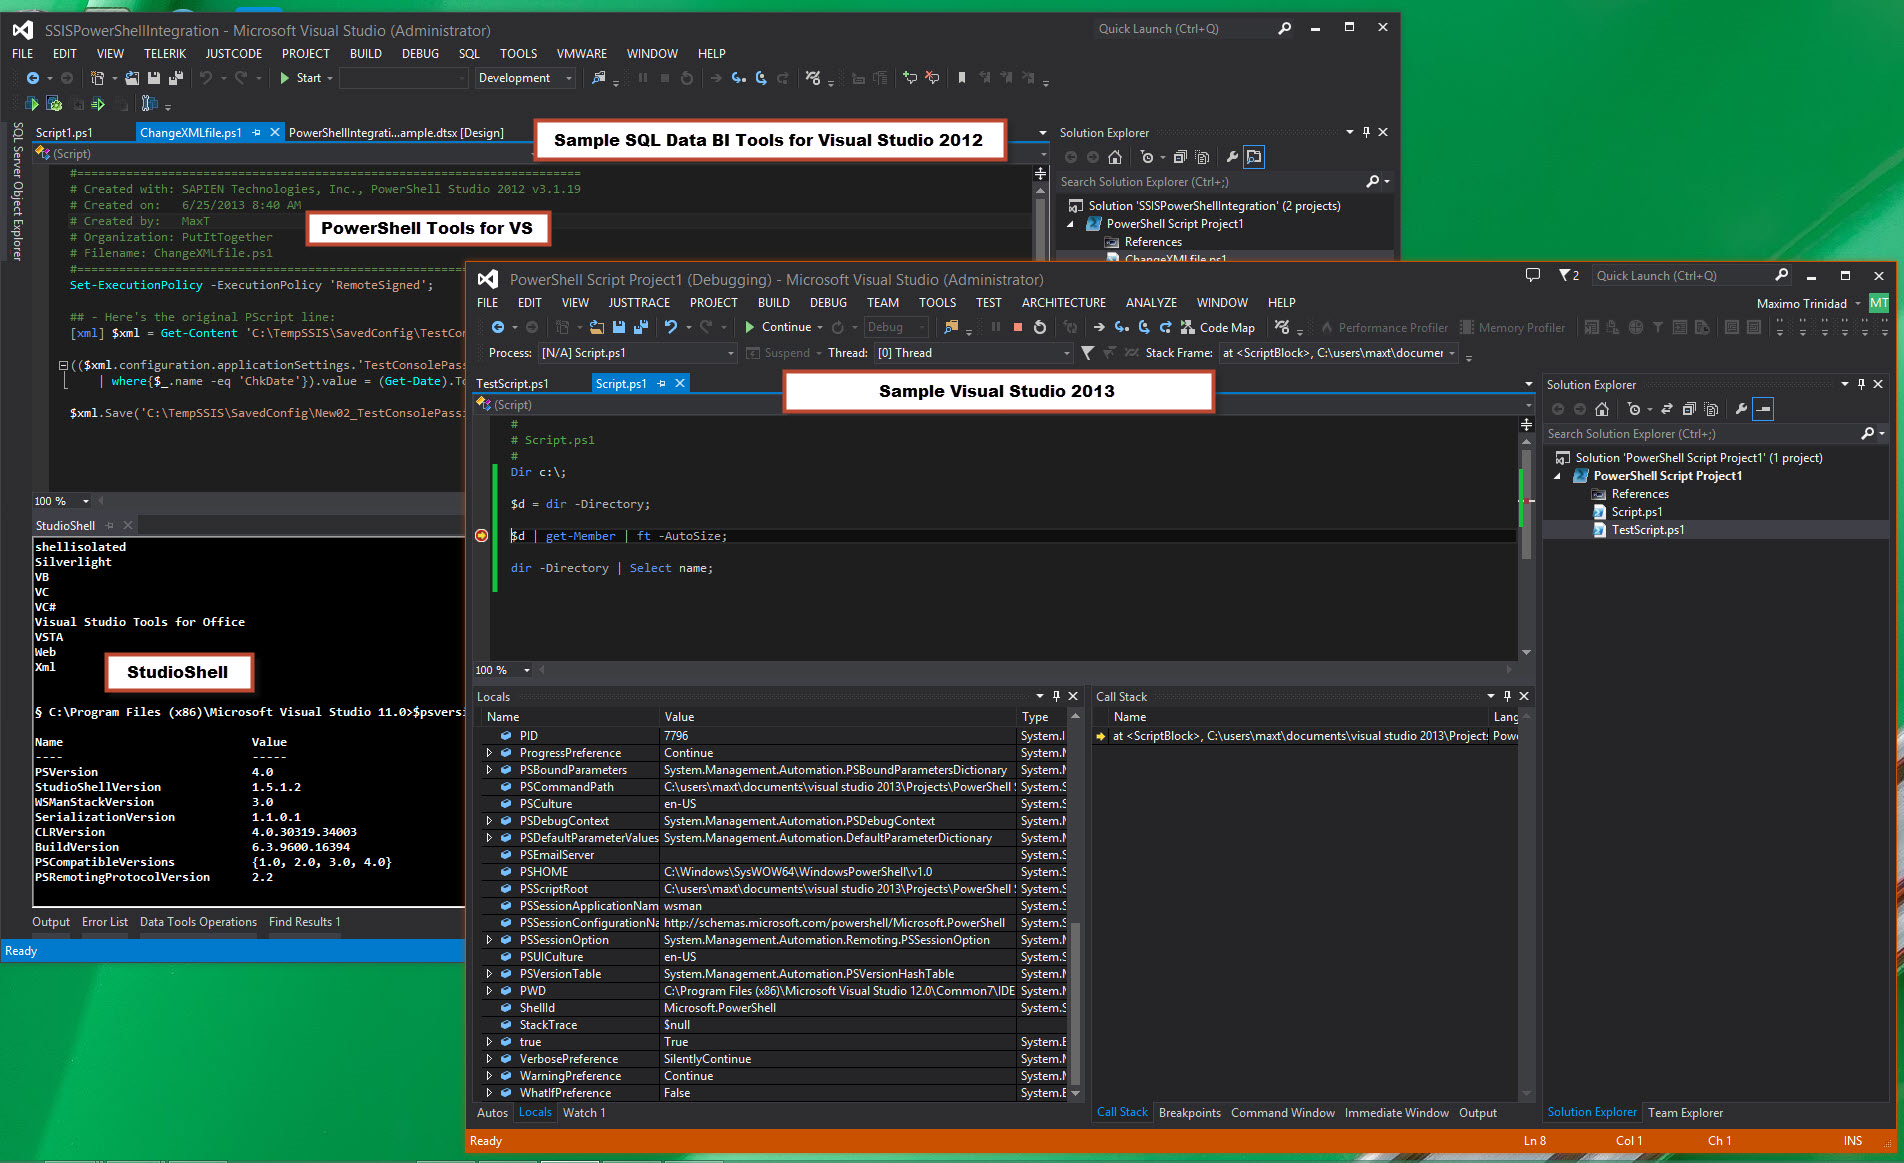 PowerShell Tools loaded in both VS2012 and VS2013